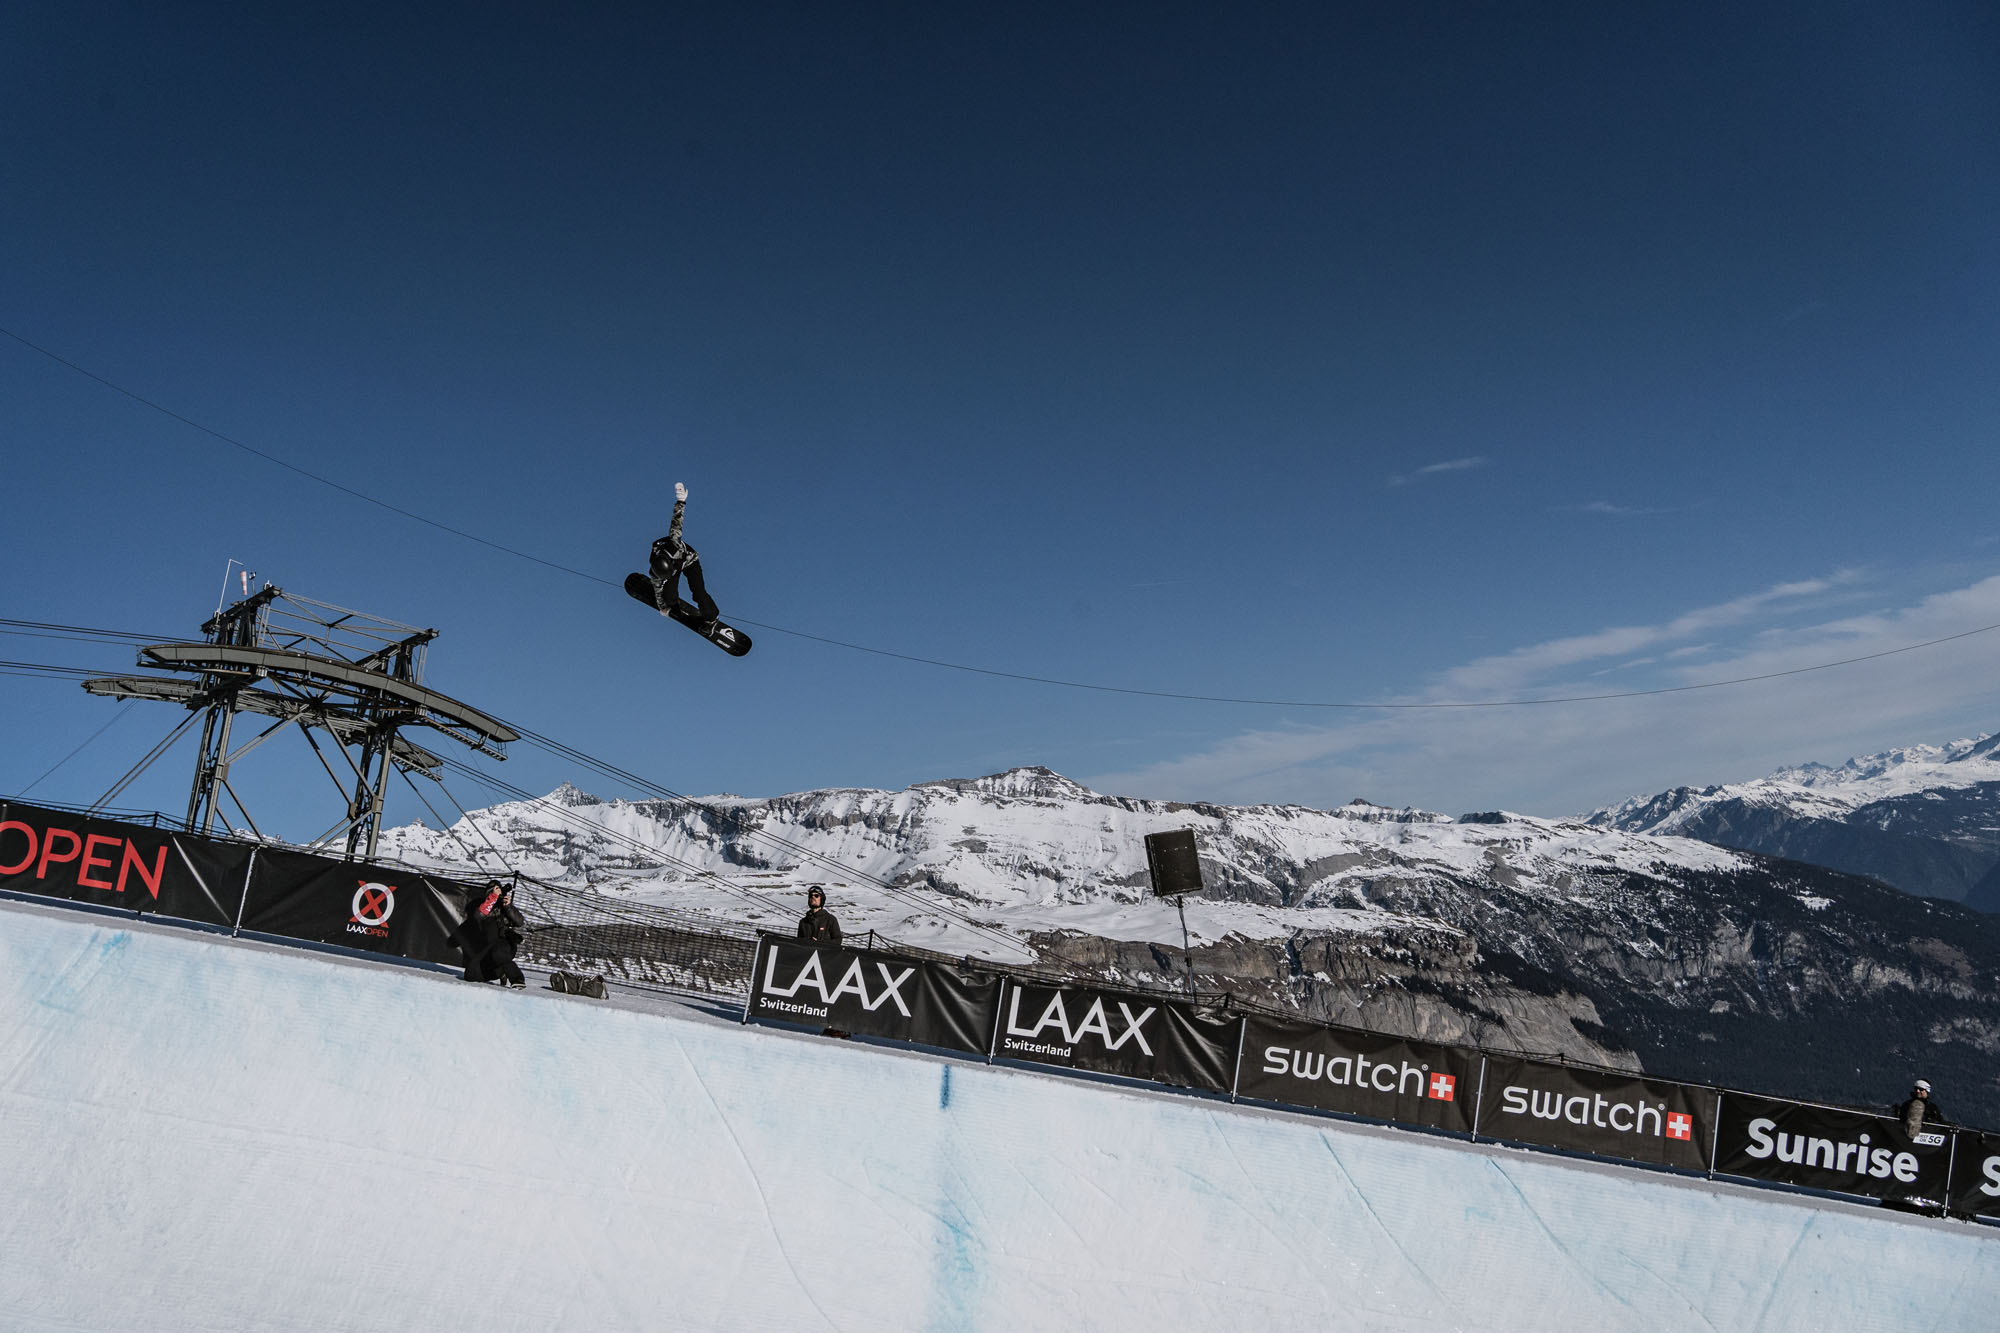 Laax Open 2020 - Fotocredit: Chris Gollhofer